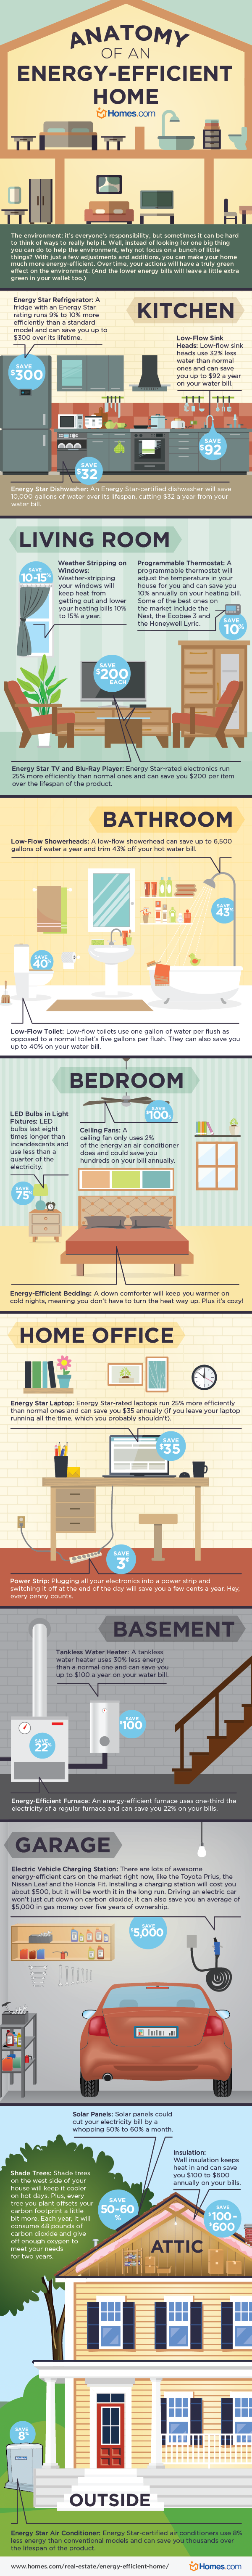 Anatomy of an Energy Efficient-Home